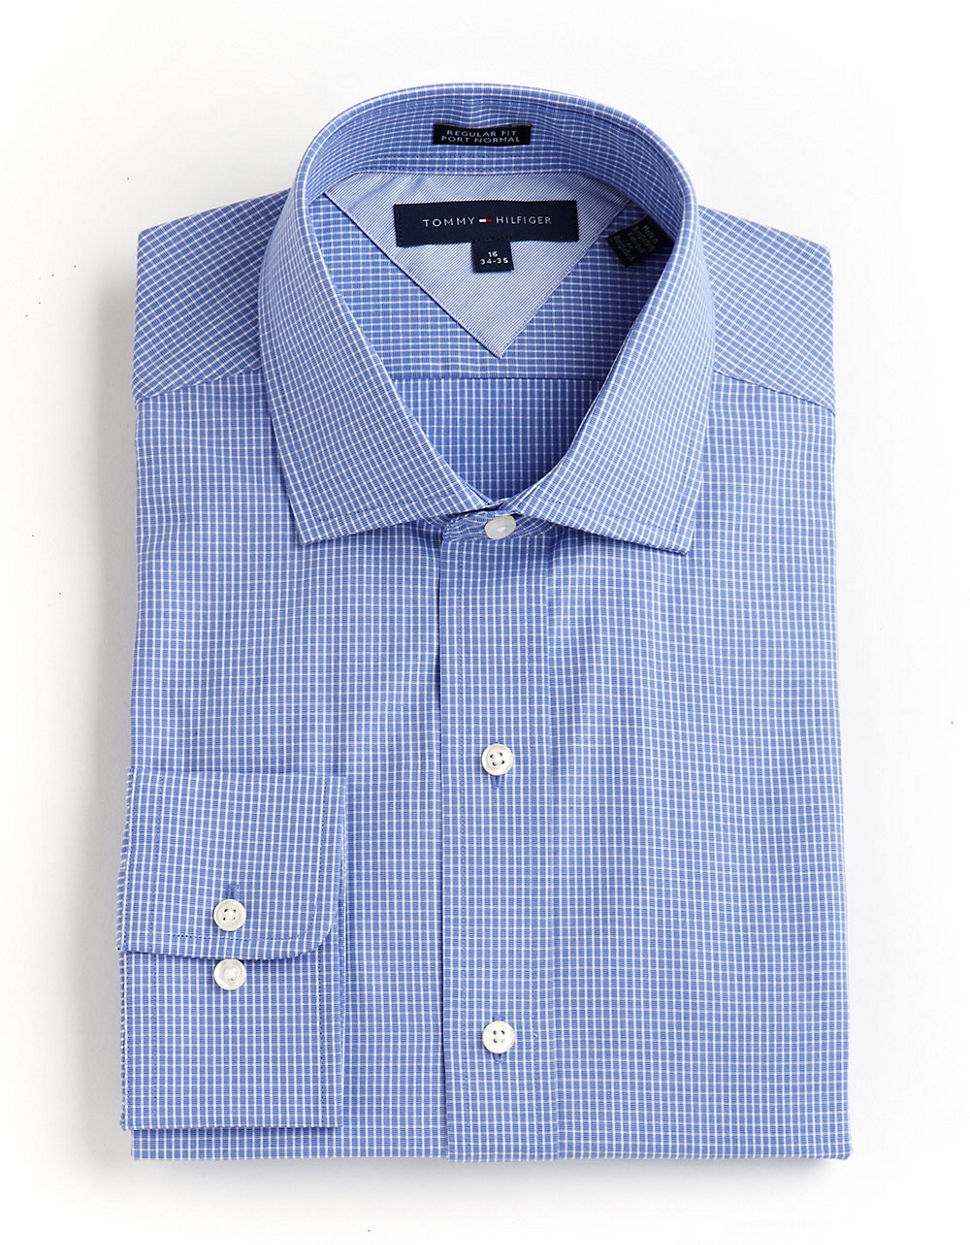 Tommy hilfiger Tommy Hilfiger Ls Regular Fit Dress Shirt blue 155  34/35